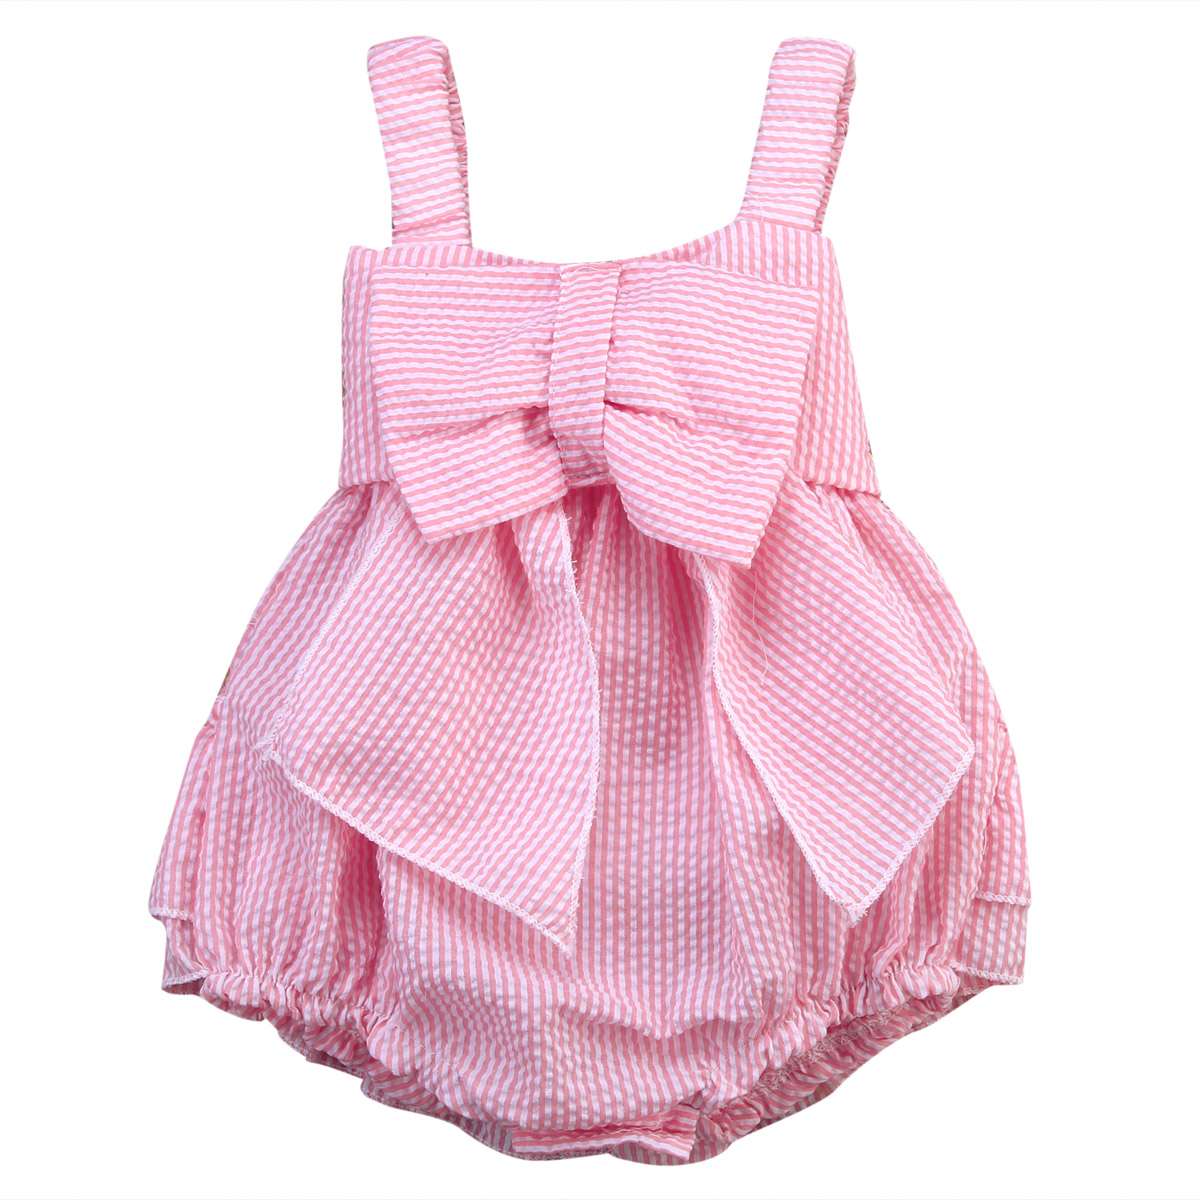 3366cb3b3cf 0-24M Newborn Baby Girl Romper Sleeveless Pink Bow Plaid Romper Clothes Cute  Bebes Summer Outfit Sunsuit Jumpsut 2017